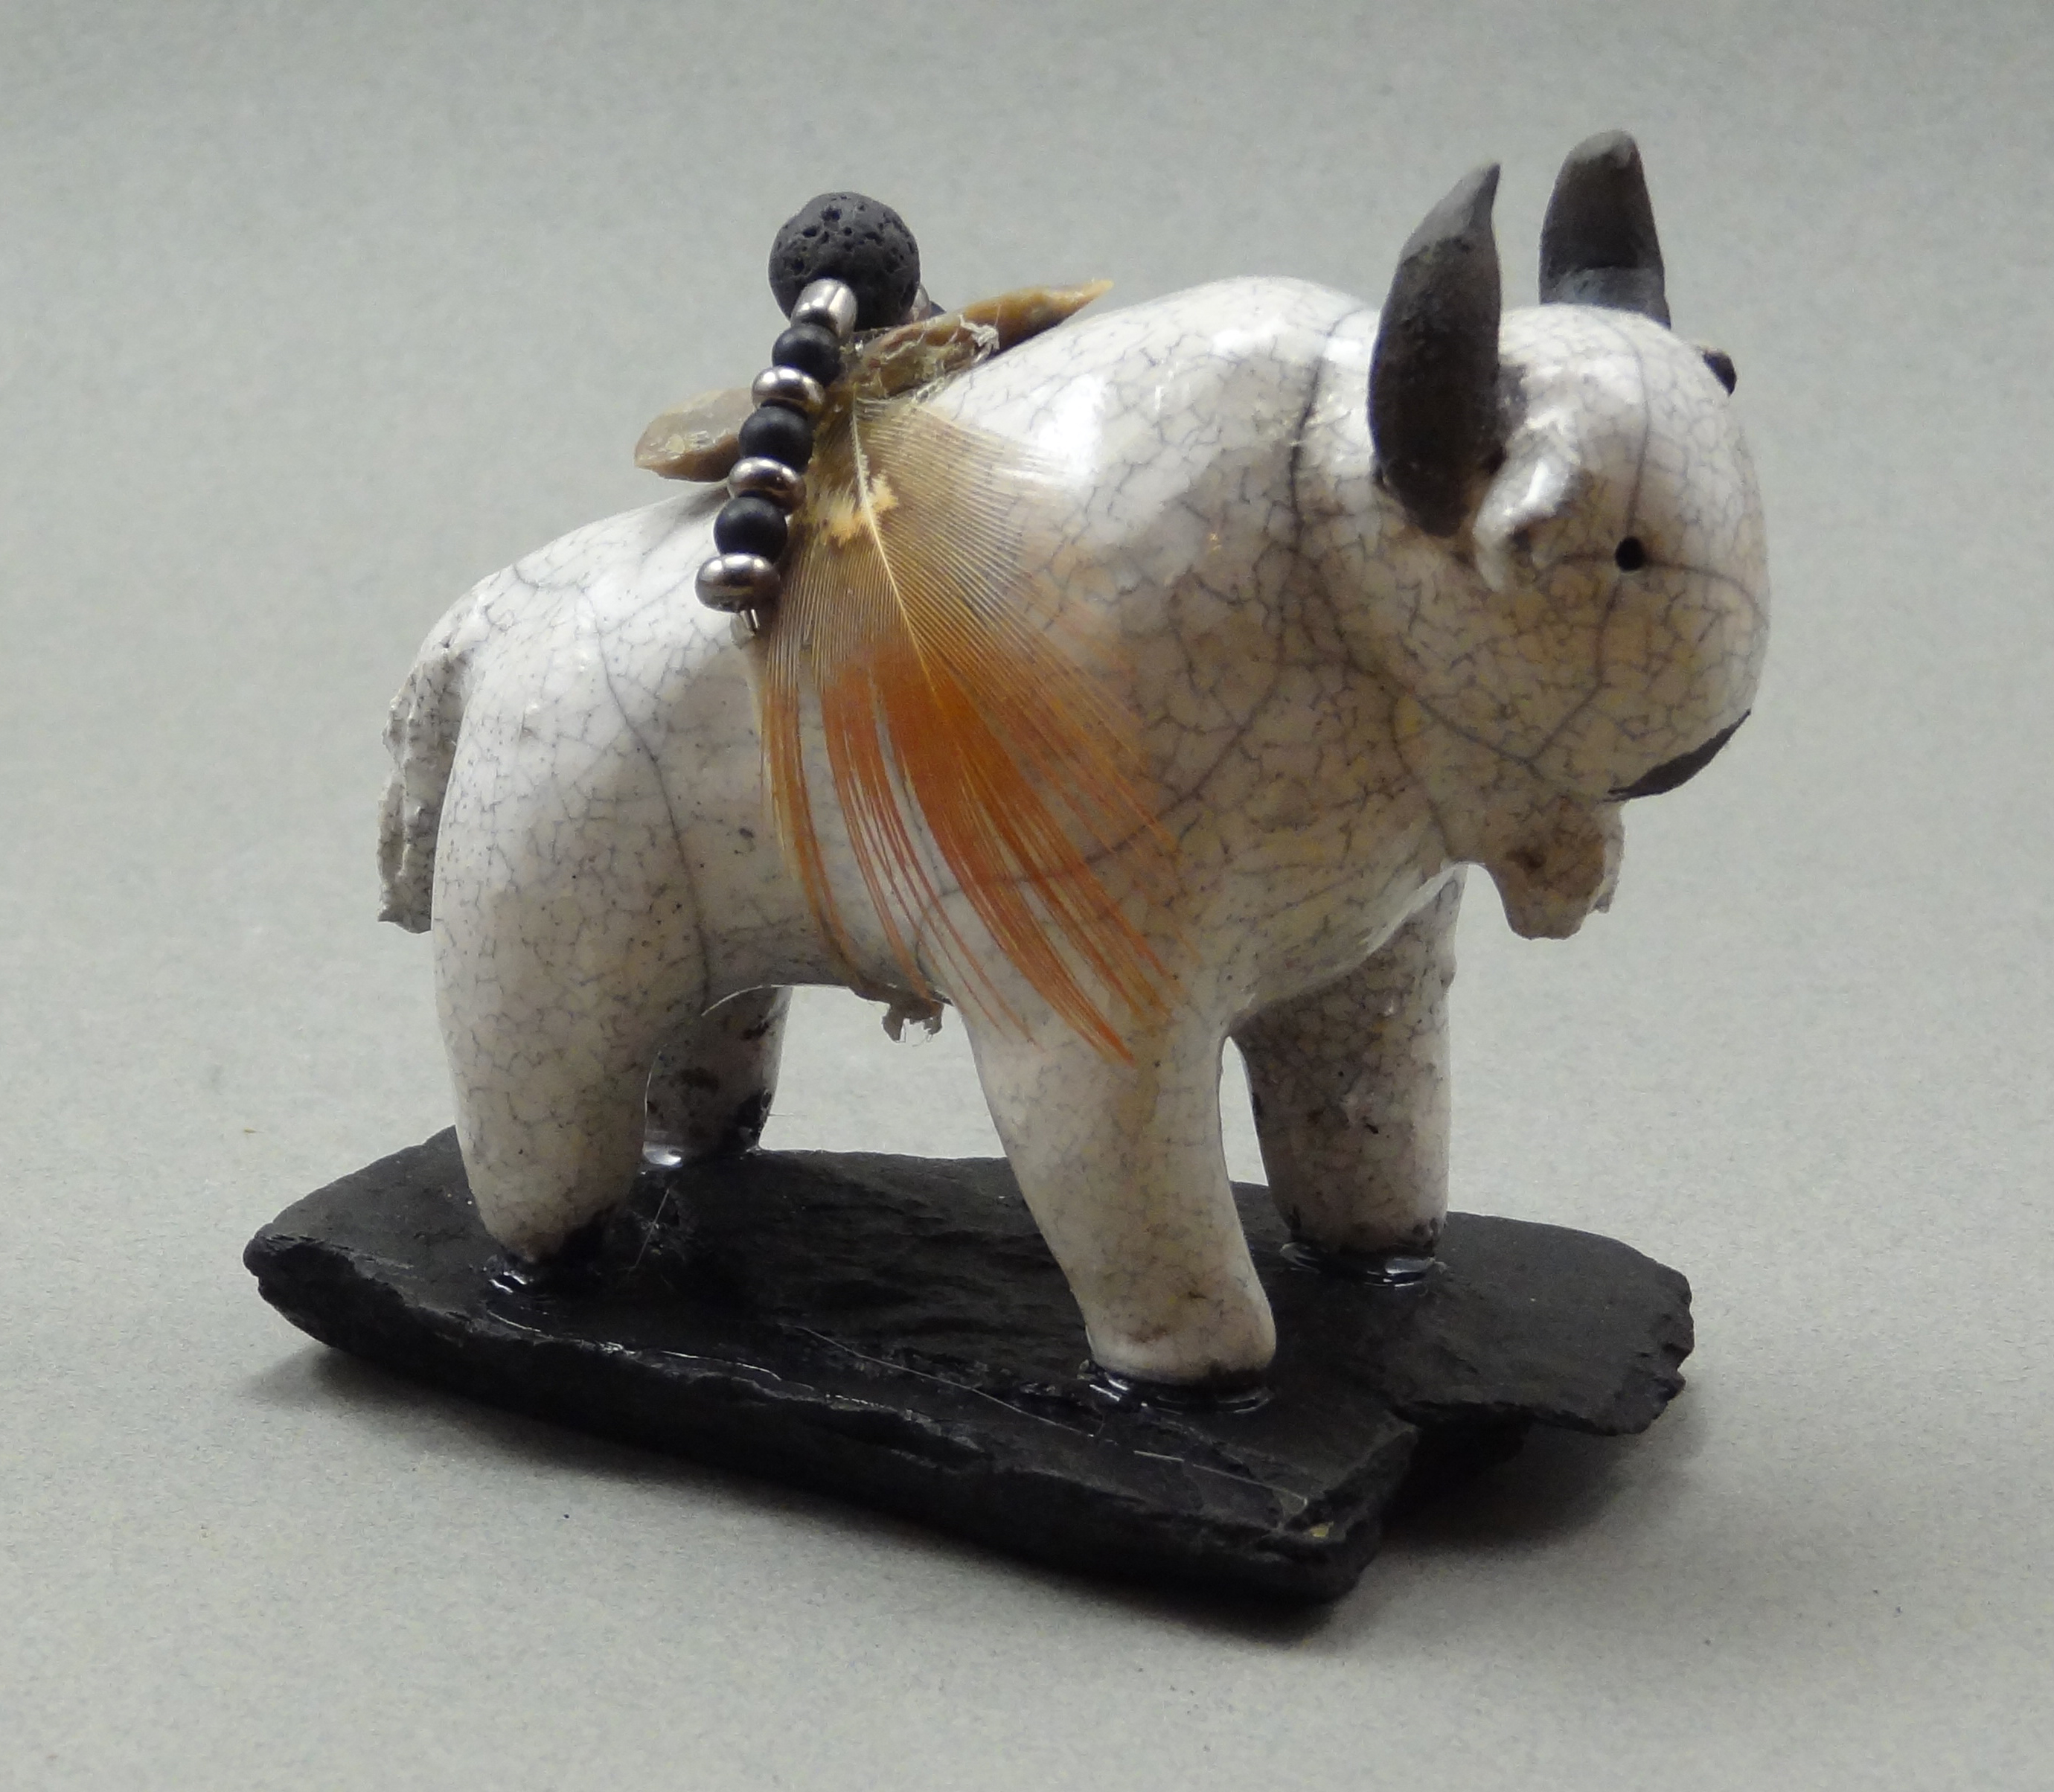 Buffalo, White Crackle glaze, raku fired, 3 x 2.5 x 1.5 inches, mounted on flagstone